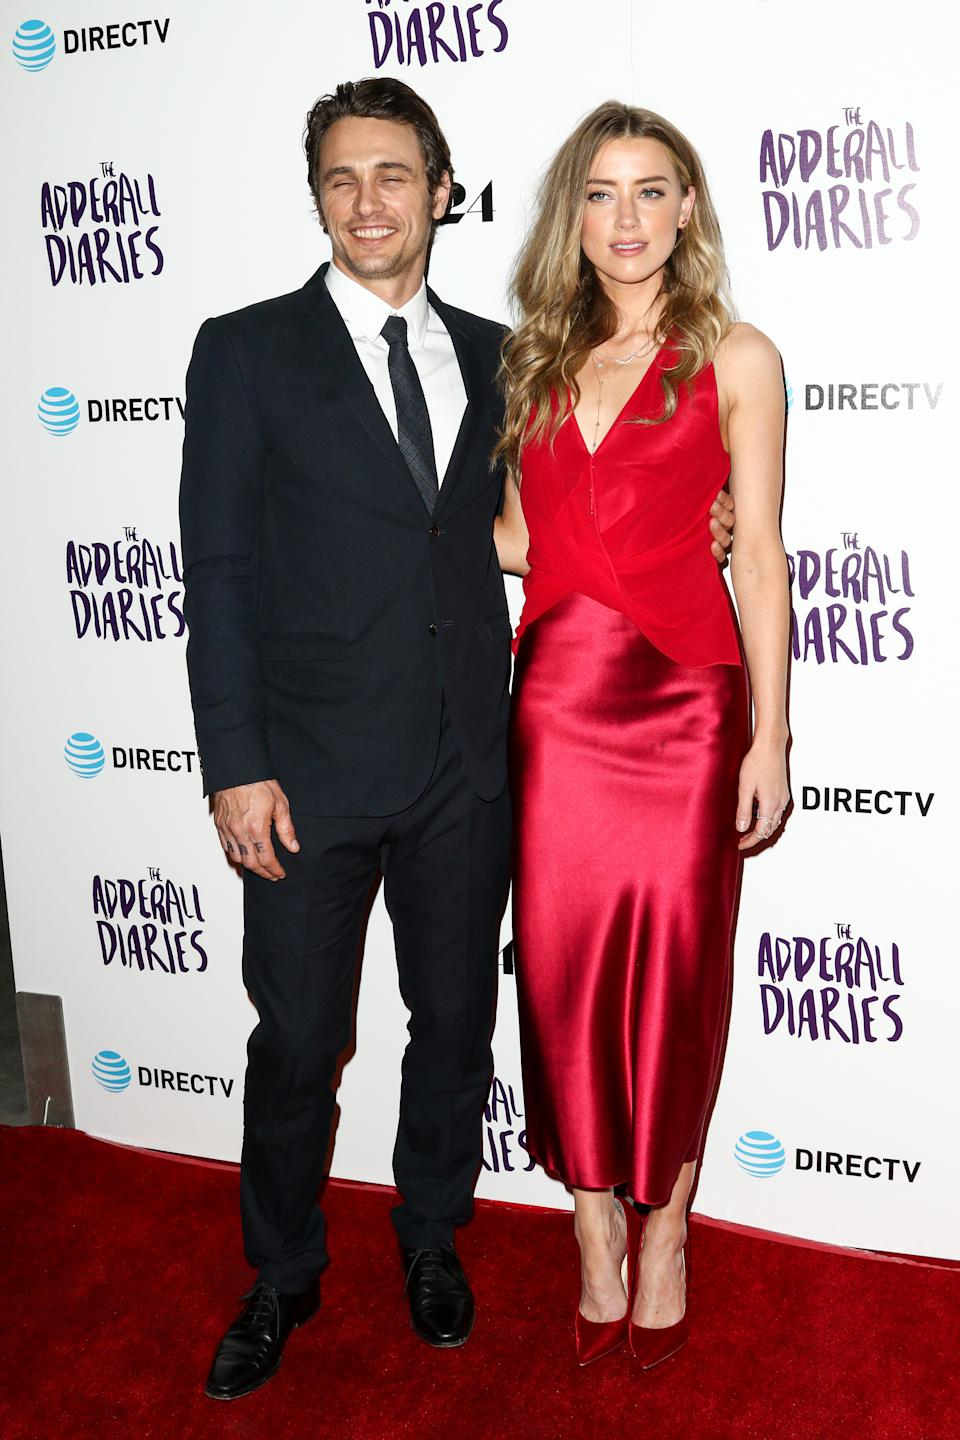 """James Franco, left, and Amber Heard attend the LA Premiere of """"The Adderall Diaries"""" held at ArcLight Hollywood on Tuesday, April 12, 2016, in Los Angeles. (Photo by John Salangsang/Invision/AP)"""